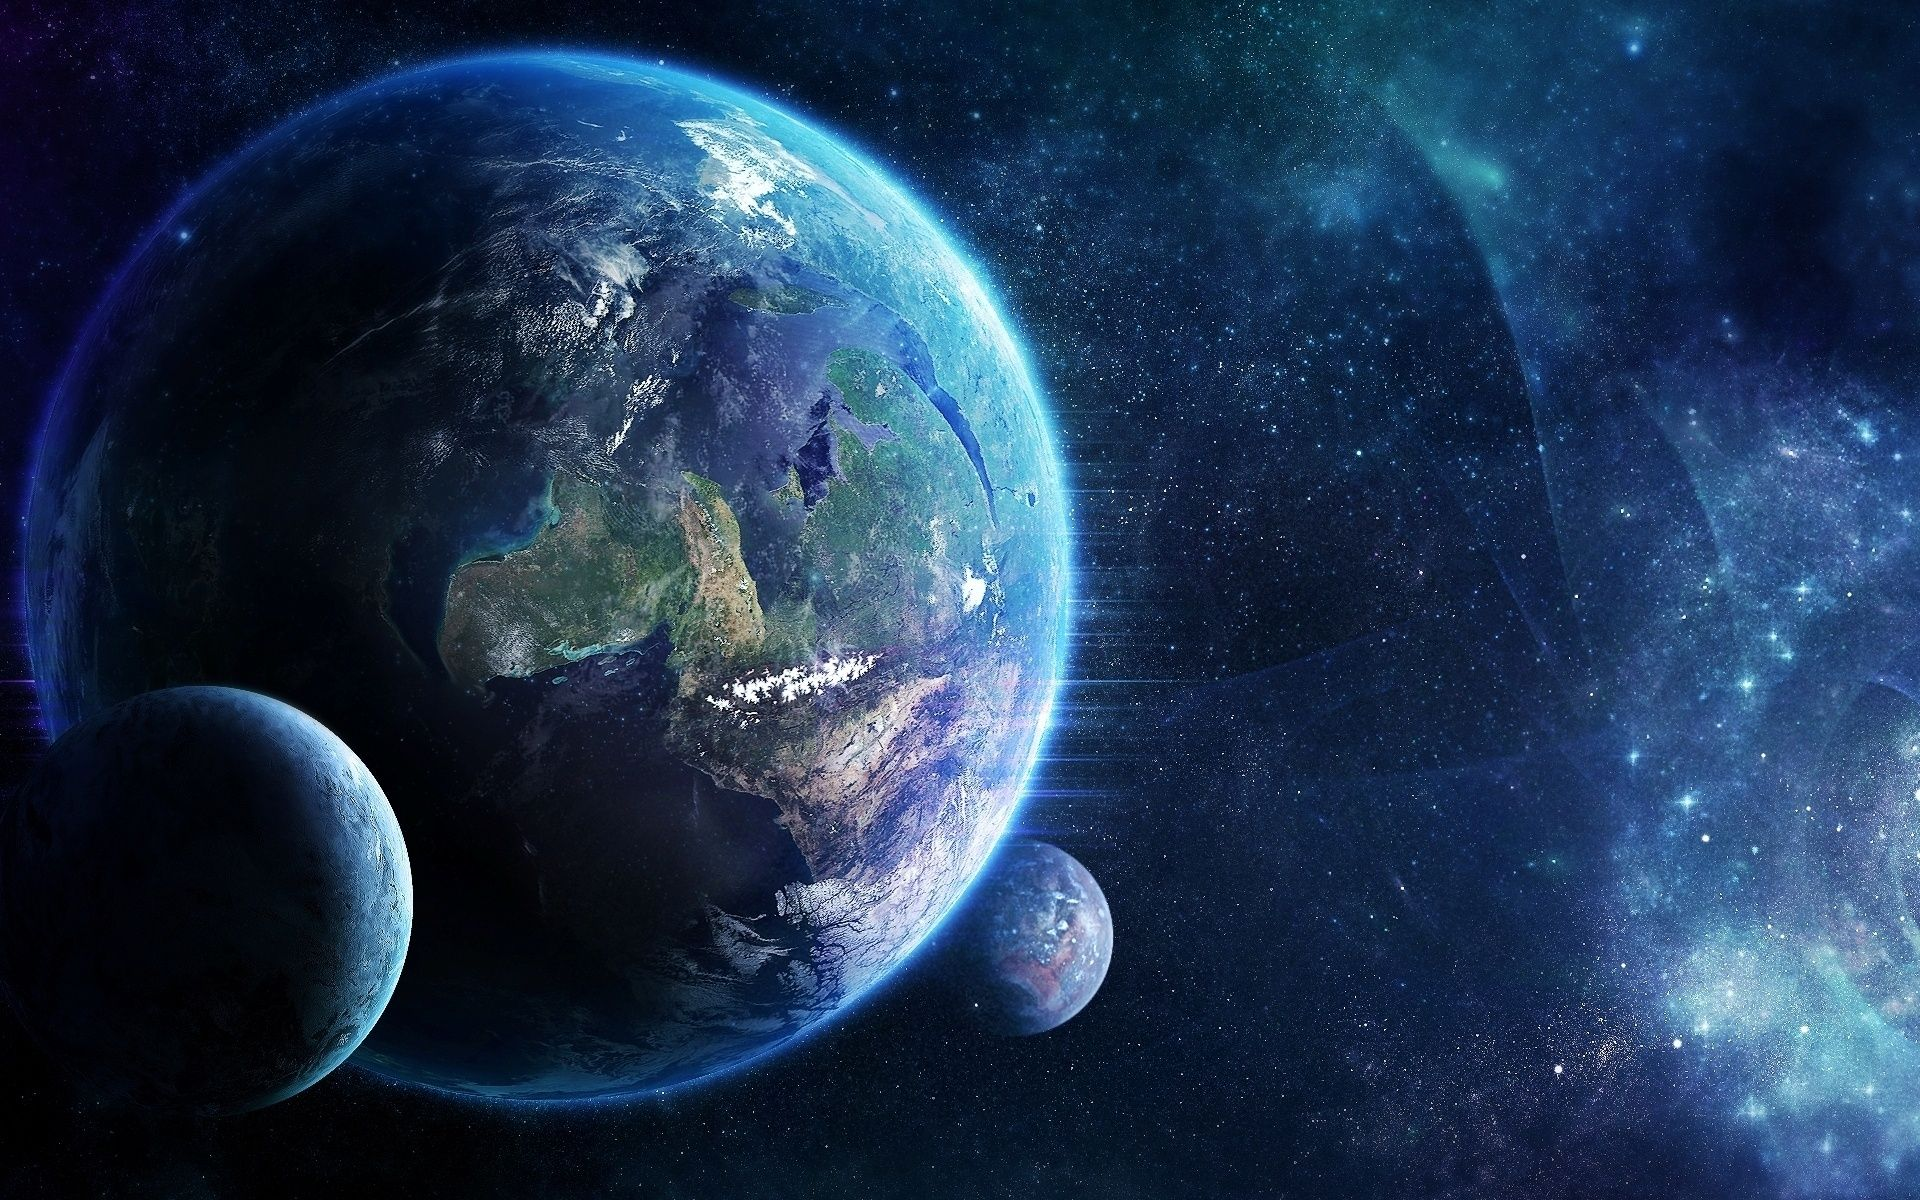 Earth Moving In Space With Small Planets Photo And Desktop Wallpaper Planets Wallpaper Space Desktop Backgrounds Galaxy Wallpaper